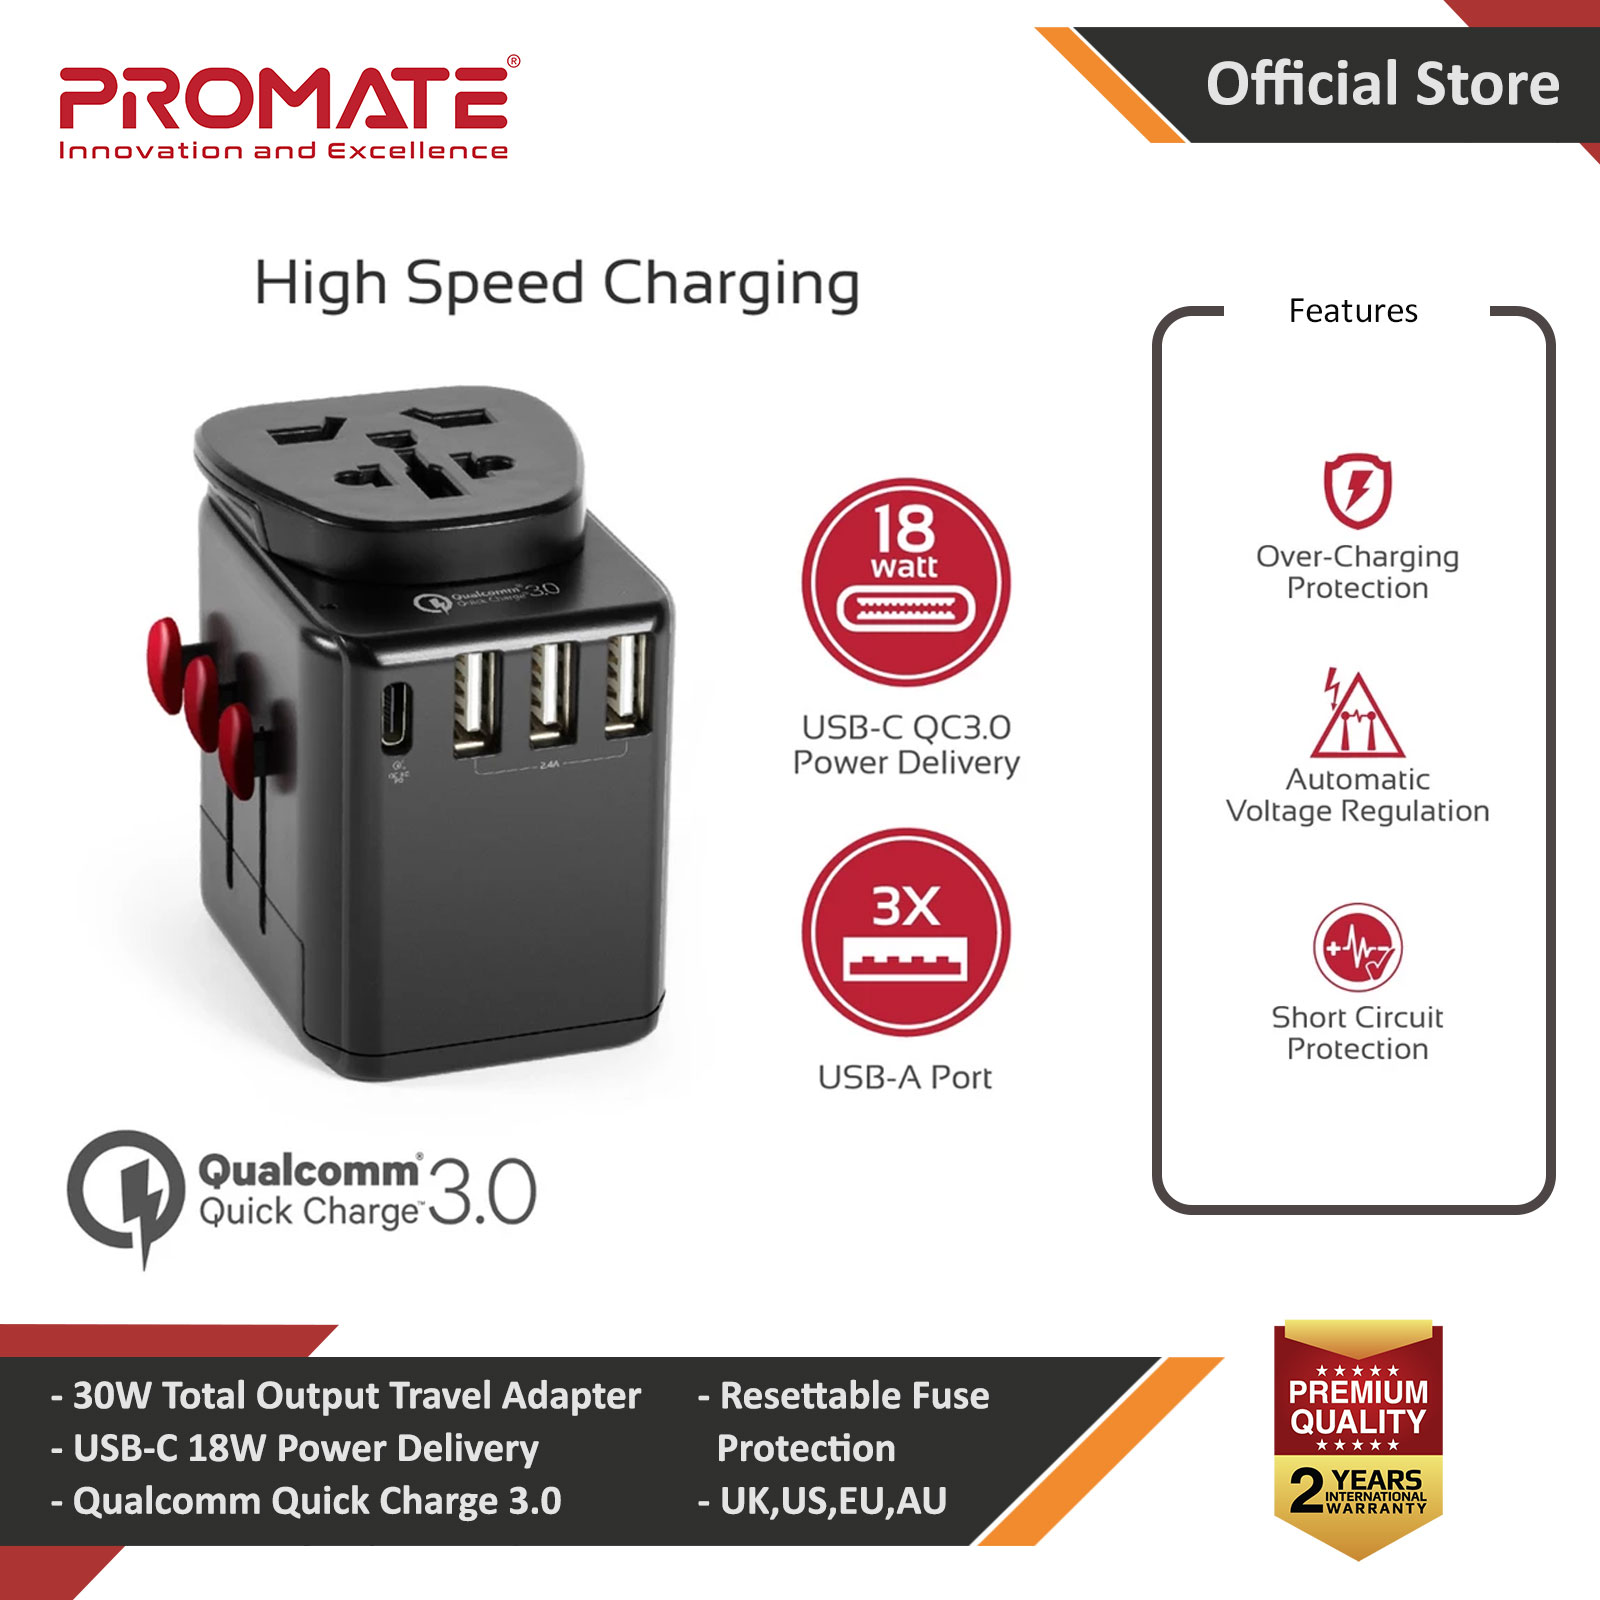 Picture of Promate Universal Travel Adapter Worlds First Grounded Power Adapter with Resettable Fuse 2.4A 3 USB Port and Qualcomm QC3.0 USB Type-C 18W Power Delivery Port, Worldwide AC Wall Outlet Adapter for UK Red Design- Red Design Cases, Red Design Covers, iPad Cases and a wide selection of Red Design Accessories in Malaysia, Sabah, Sarawak and Singapore